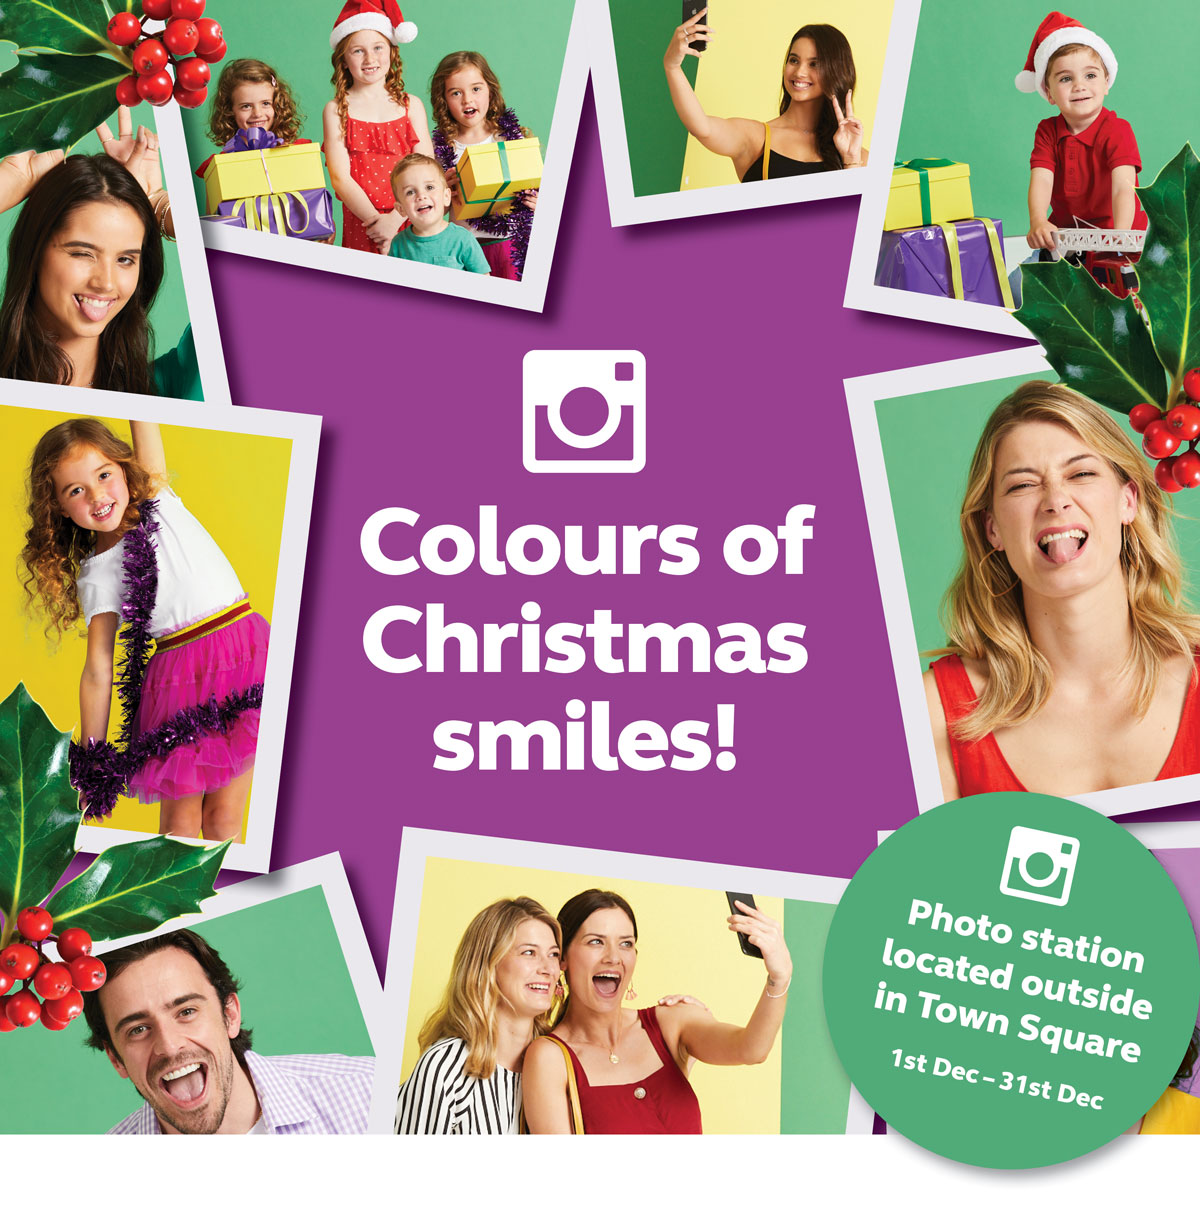 Colours of Christmas smiles!